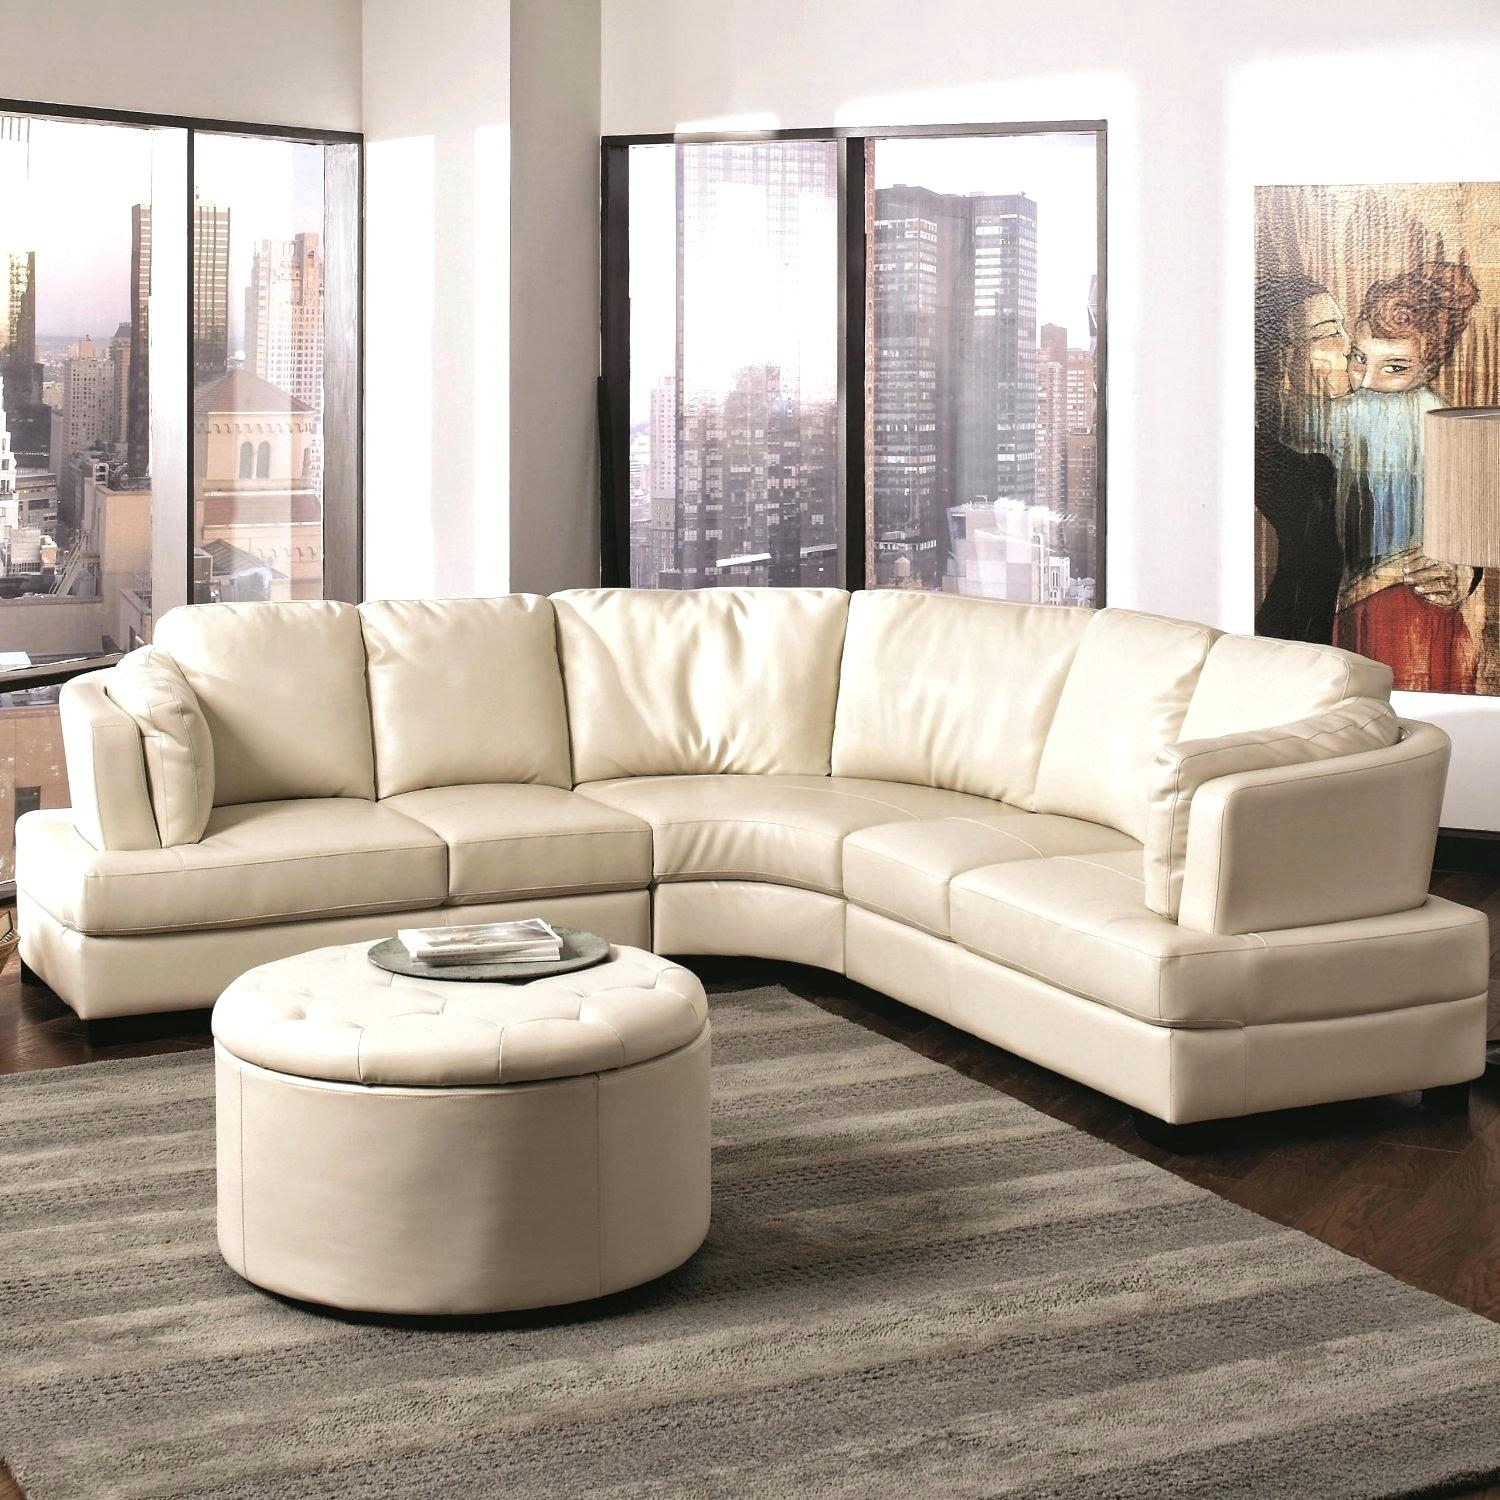 Leather Sofas London Ont: 10+ Choices Of London Ontario Sectional Sofas